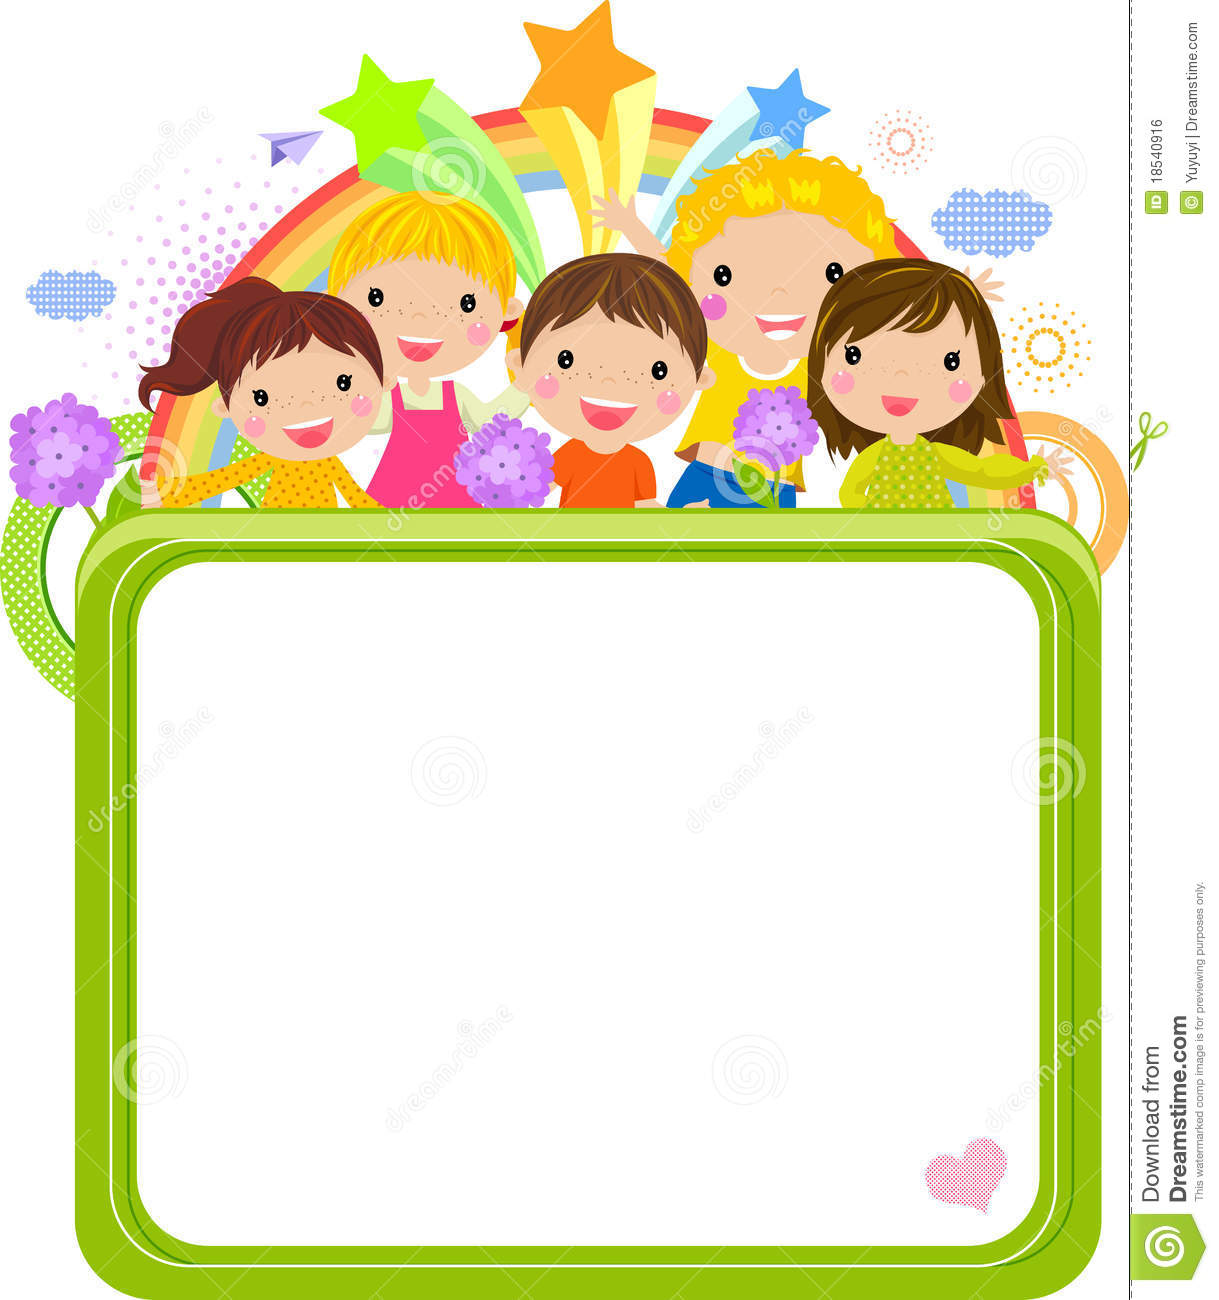 Cute Cartoon Kids Frame Royalty Free Stock Image